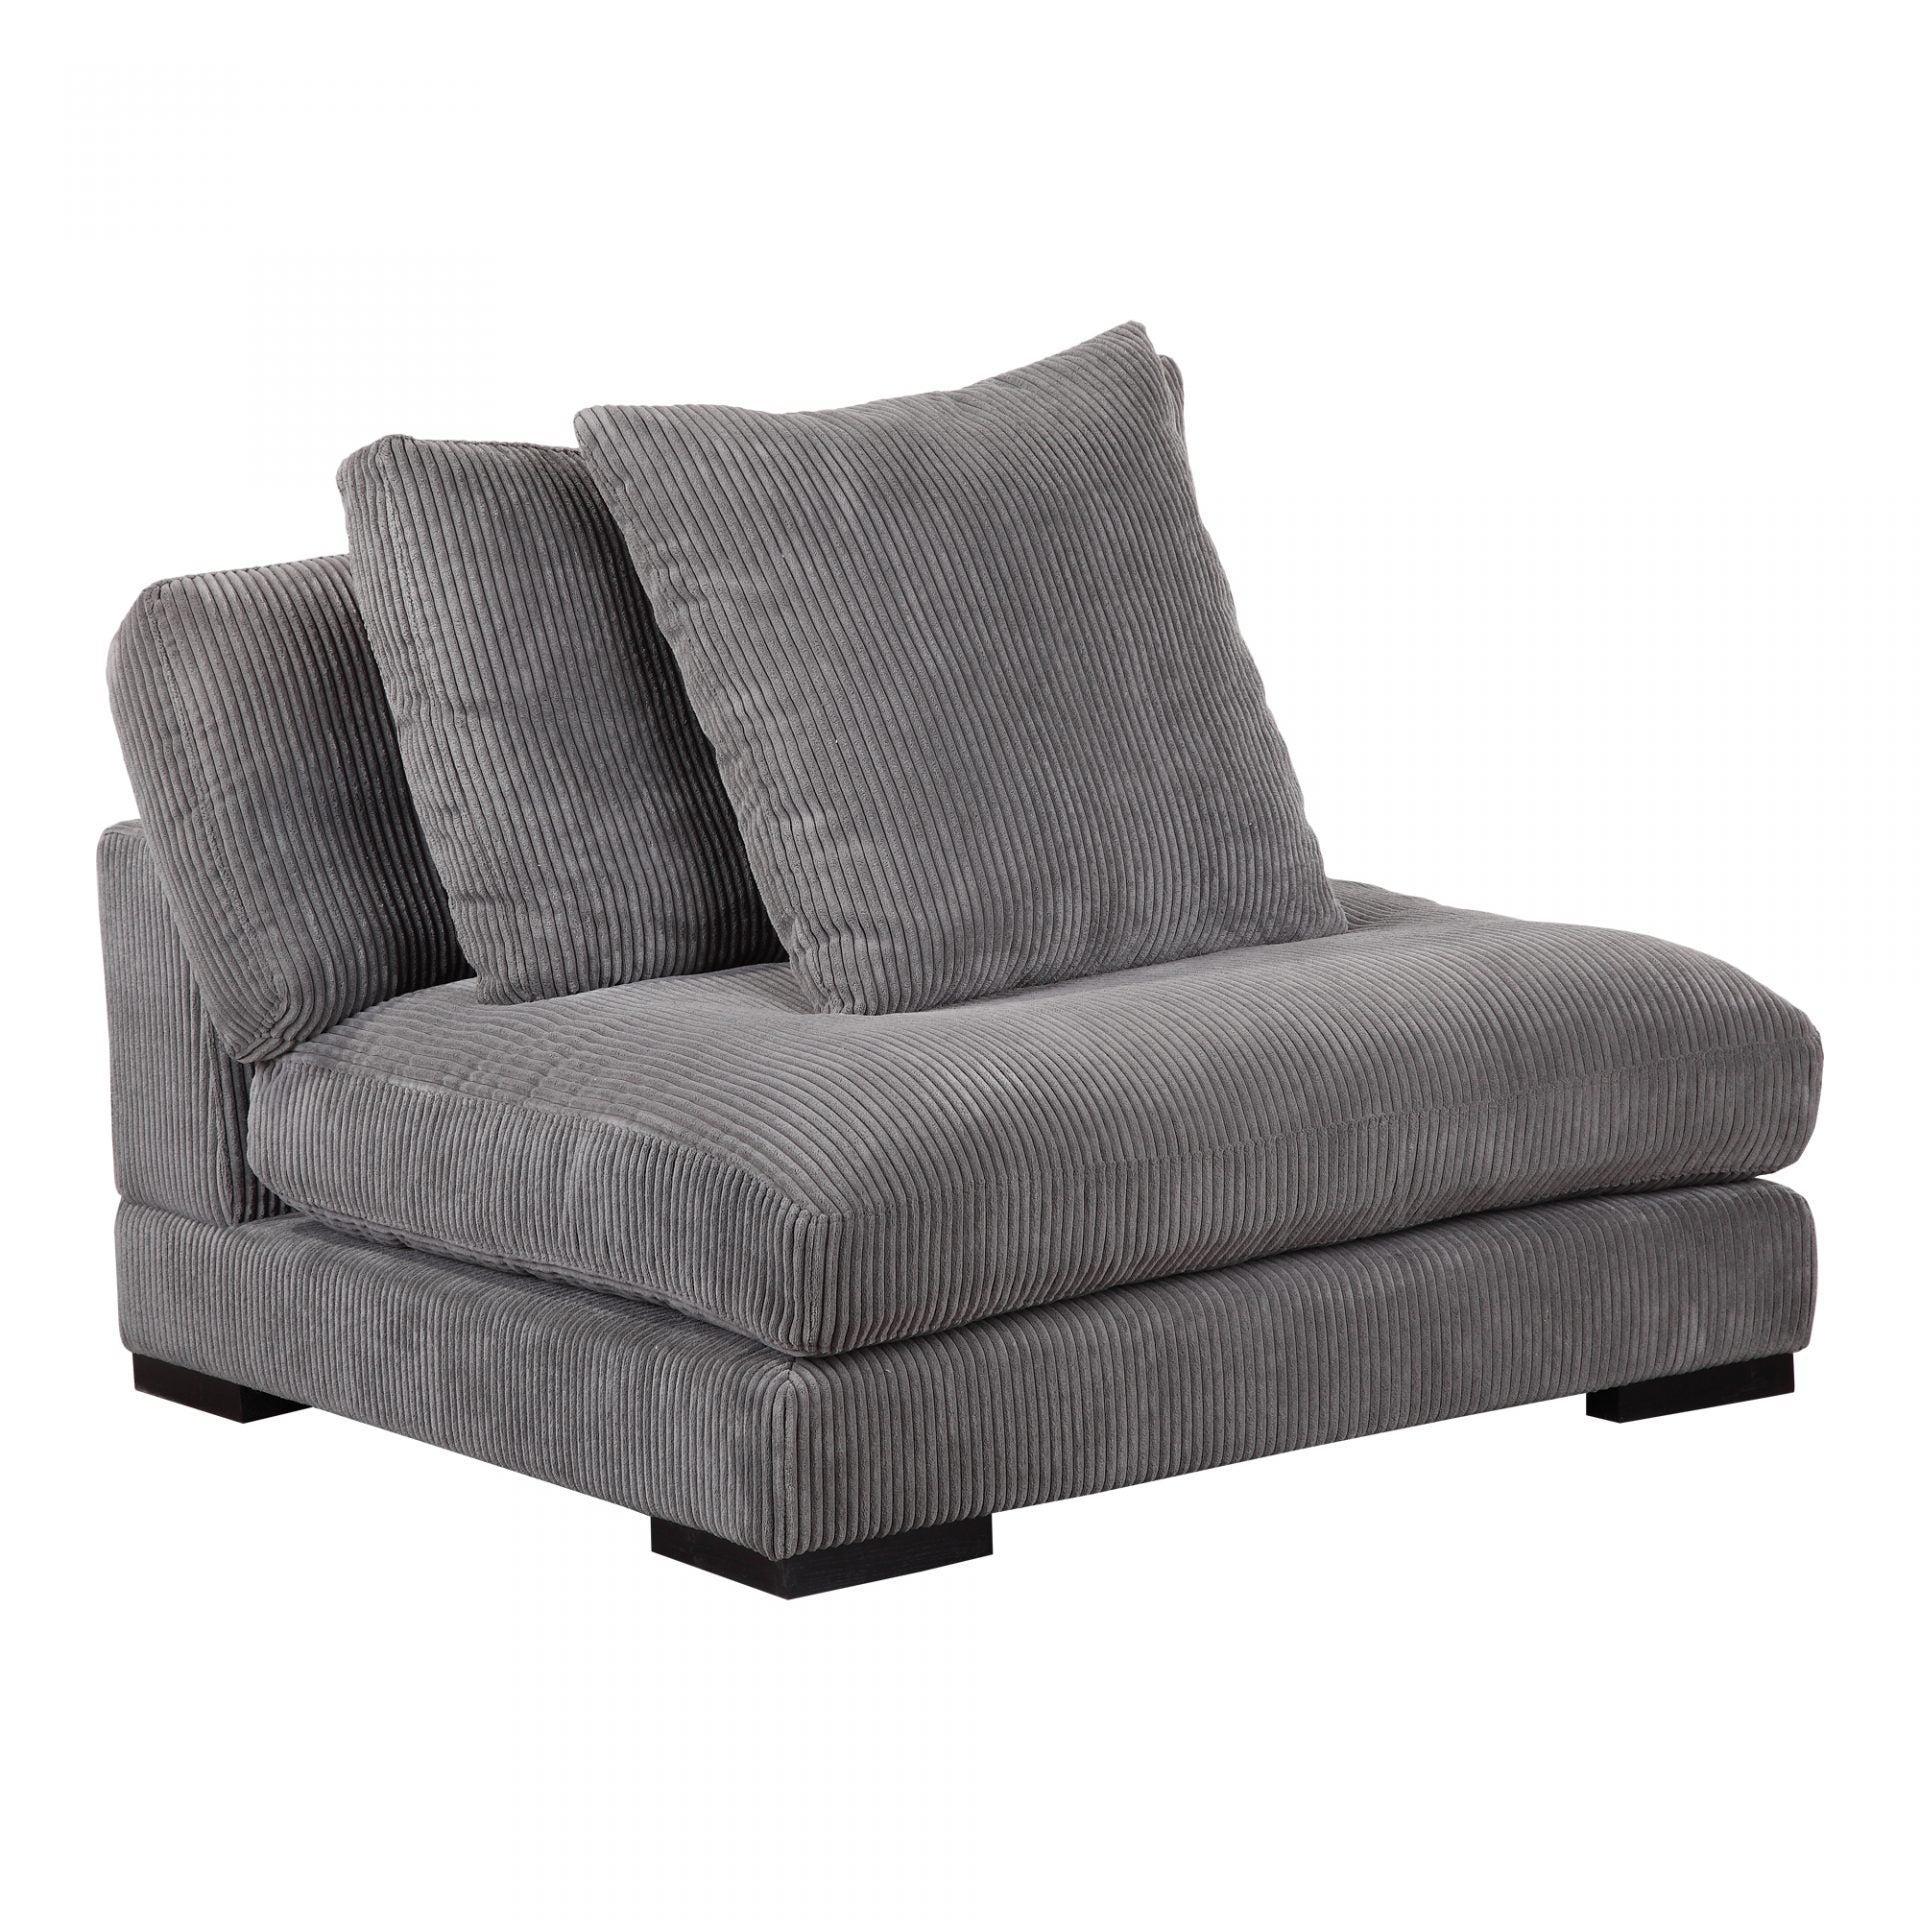 Bequem Slipper Chair Charcoal